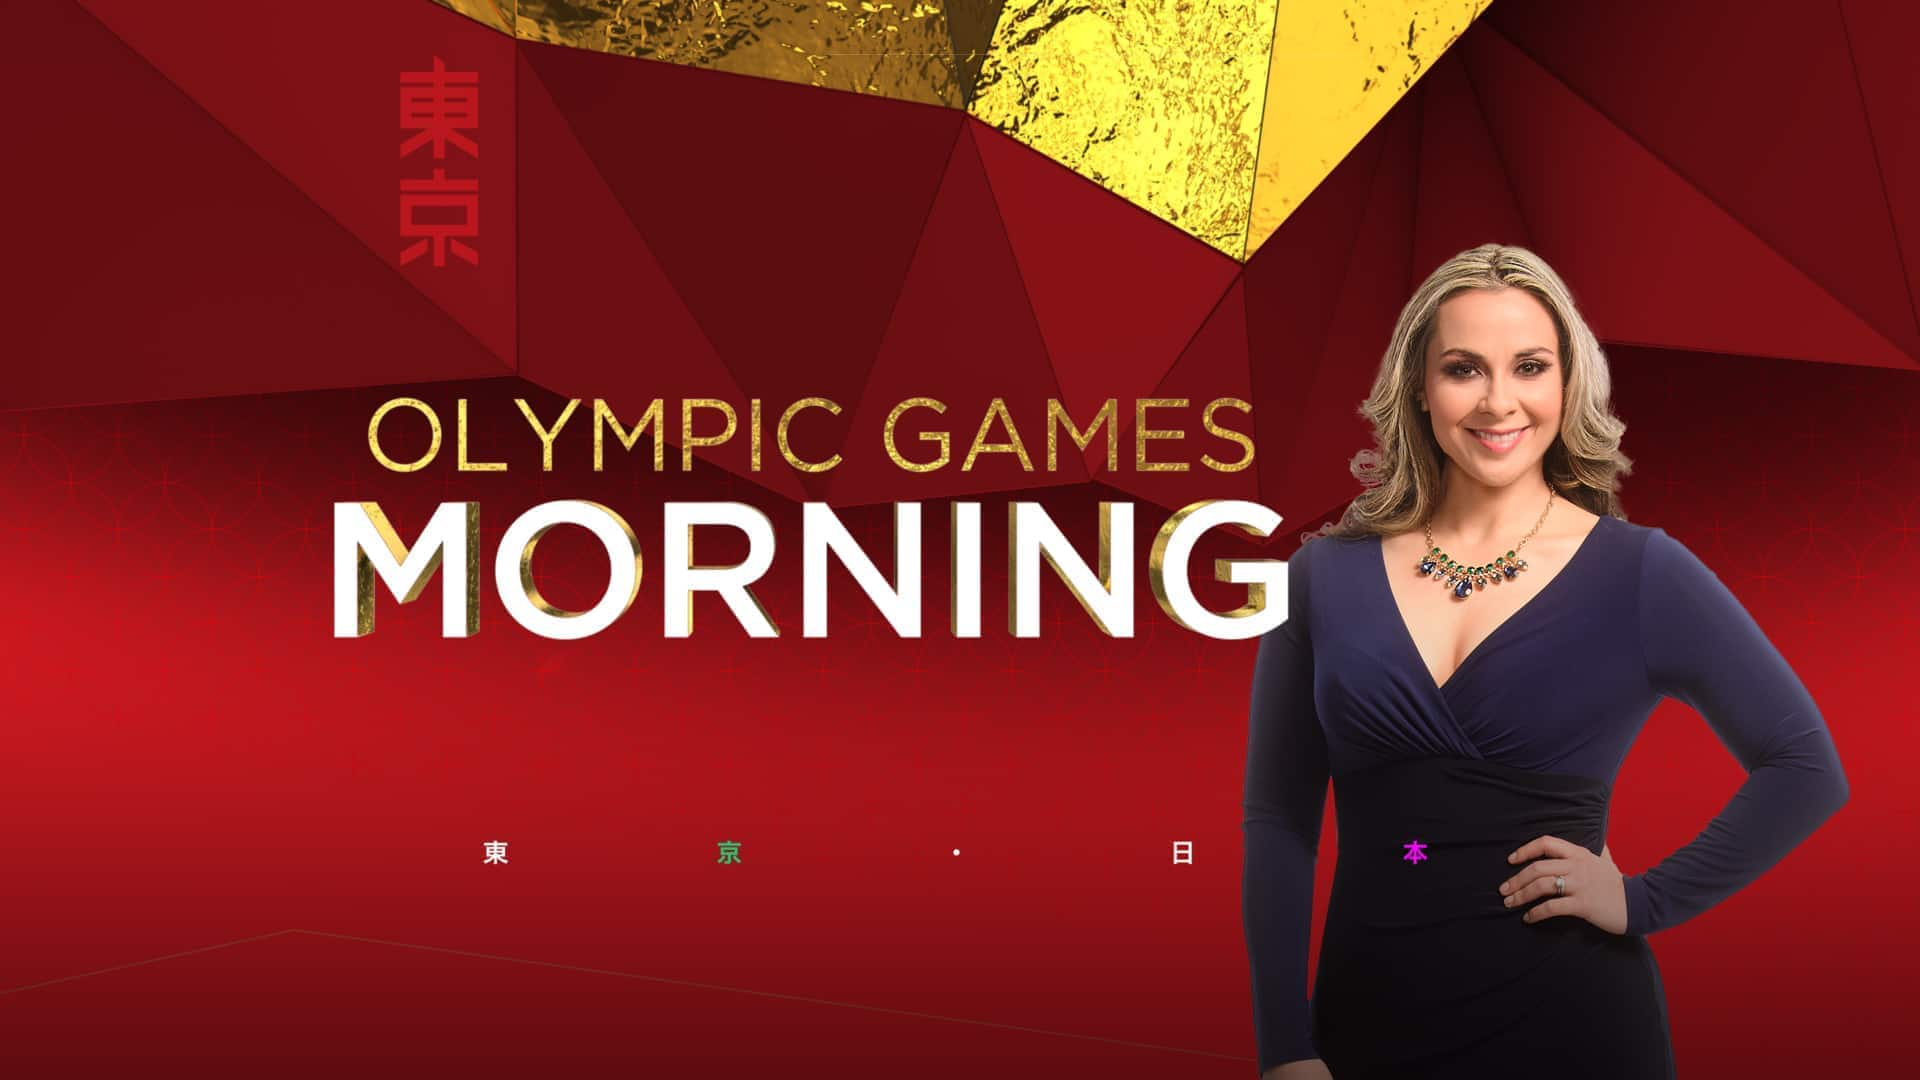 Olympic Games Morning | CBC.ca